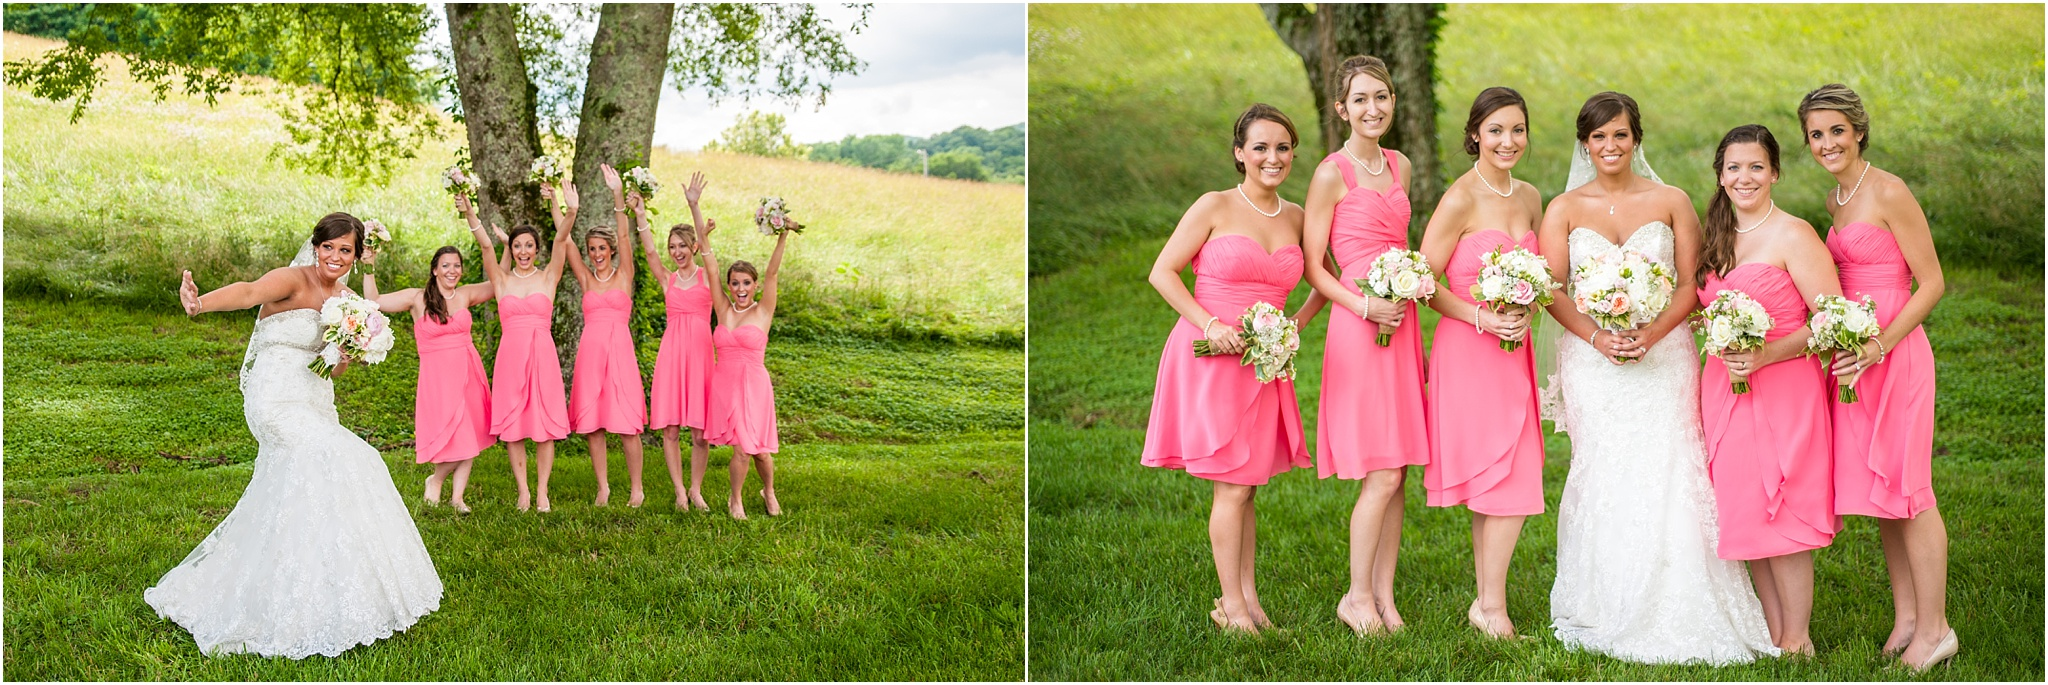 Greg Smit Photography Nashville wedding photographer Mint Springs Farm  9